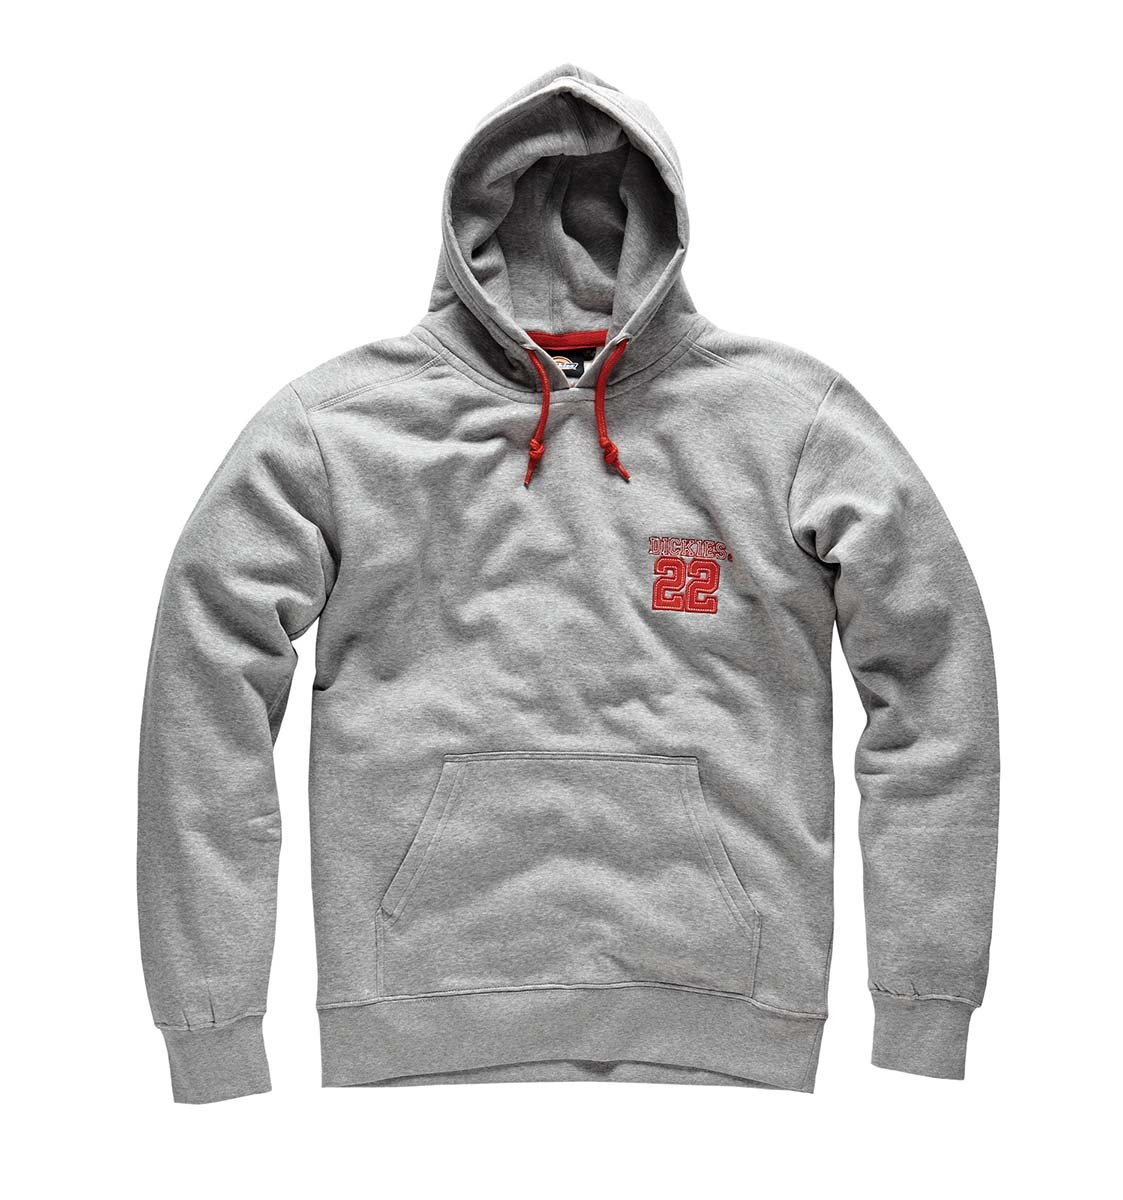 Torque Hooded Sweatshirt